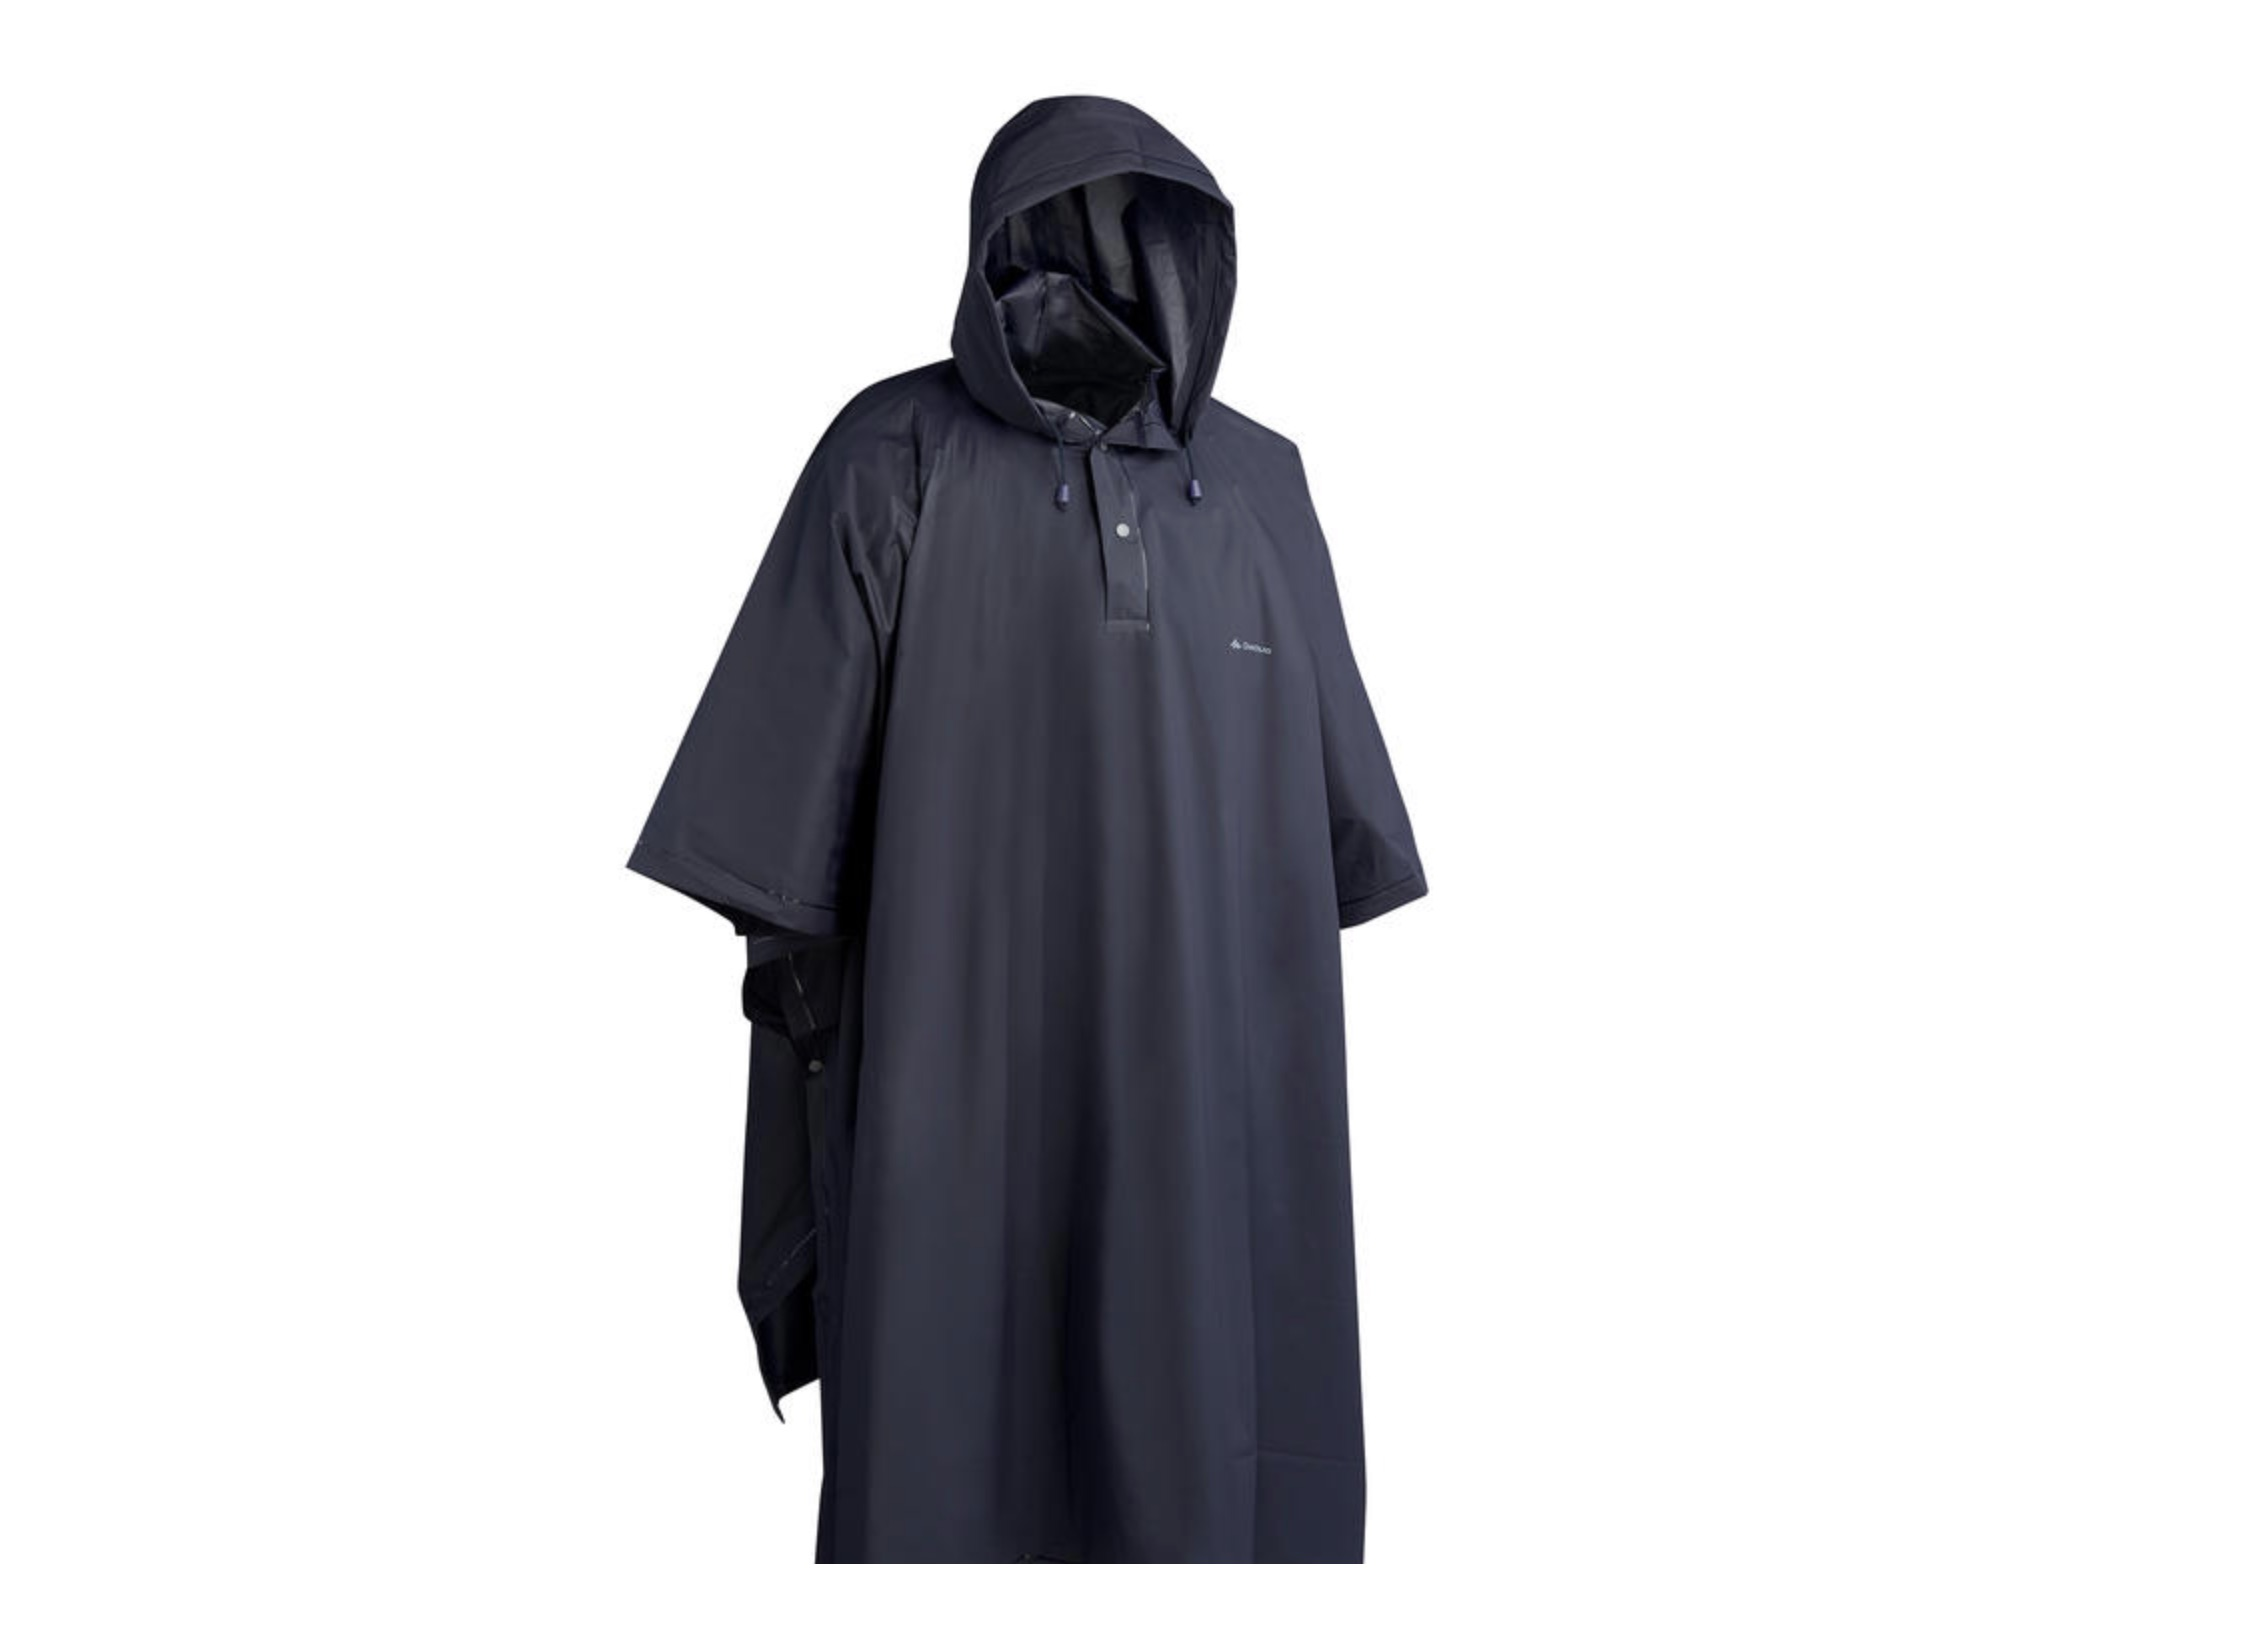 Dark poncho. Trekking shoes